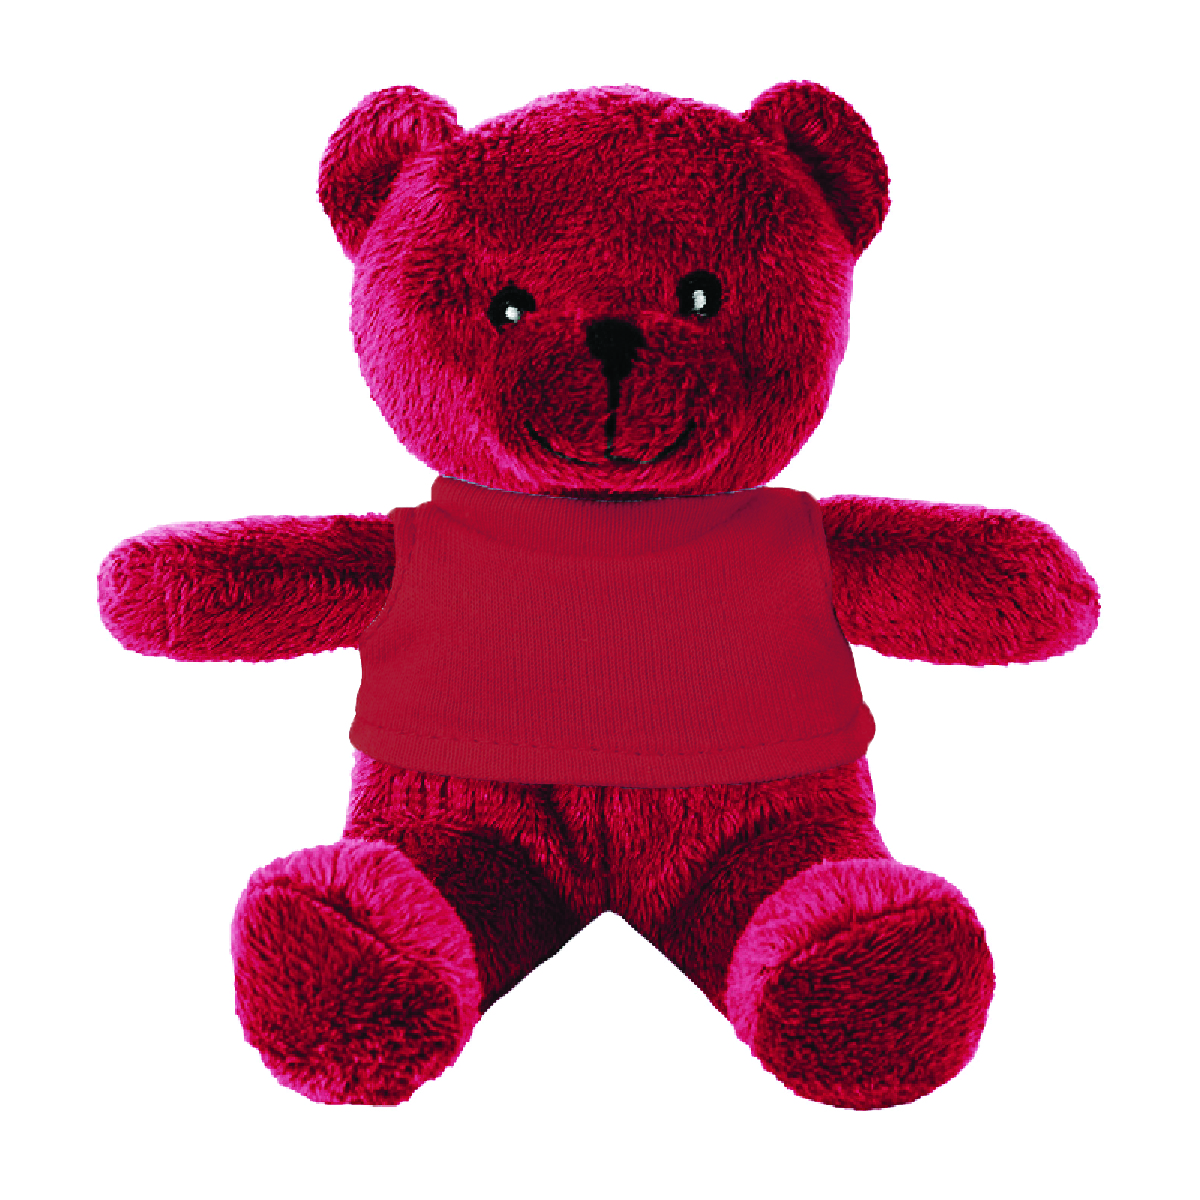 Red Color Bears